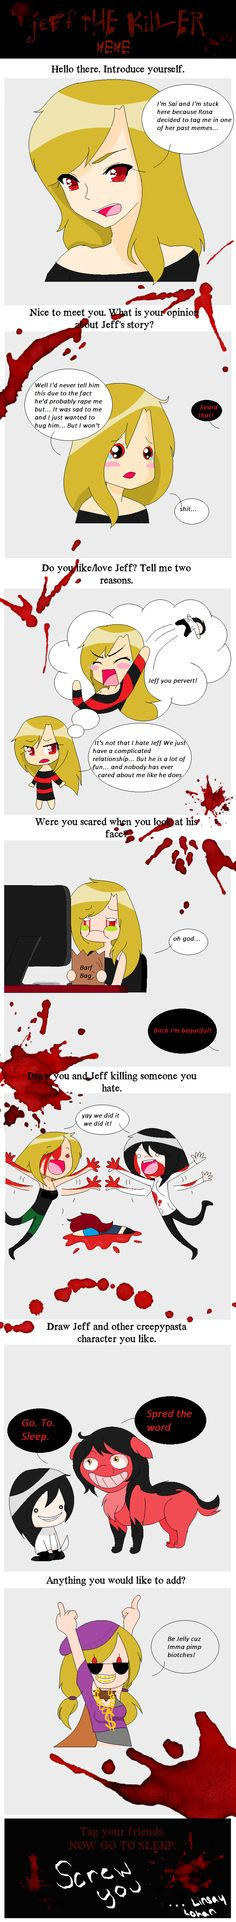 Jeff the Killer meme Sai's opinion by HotPieceOfCandy on deviantART